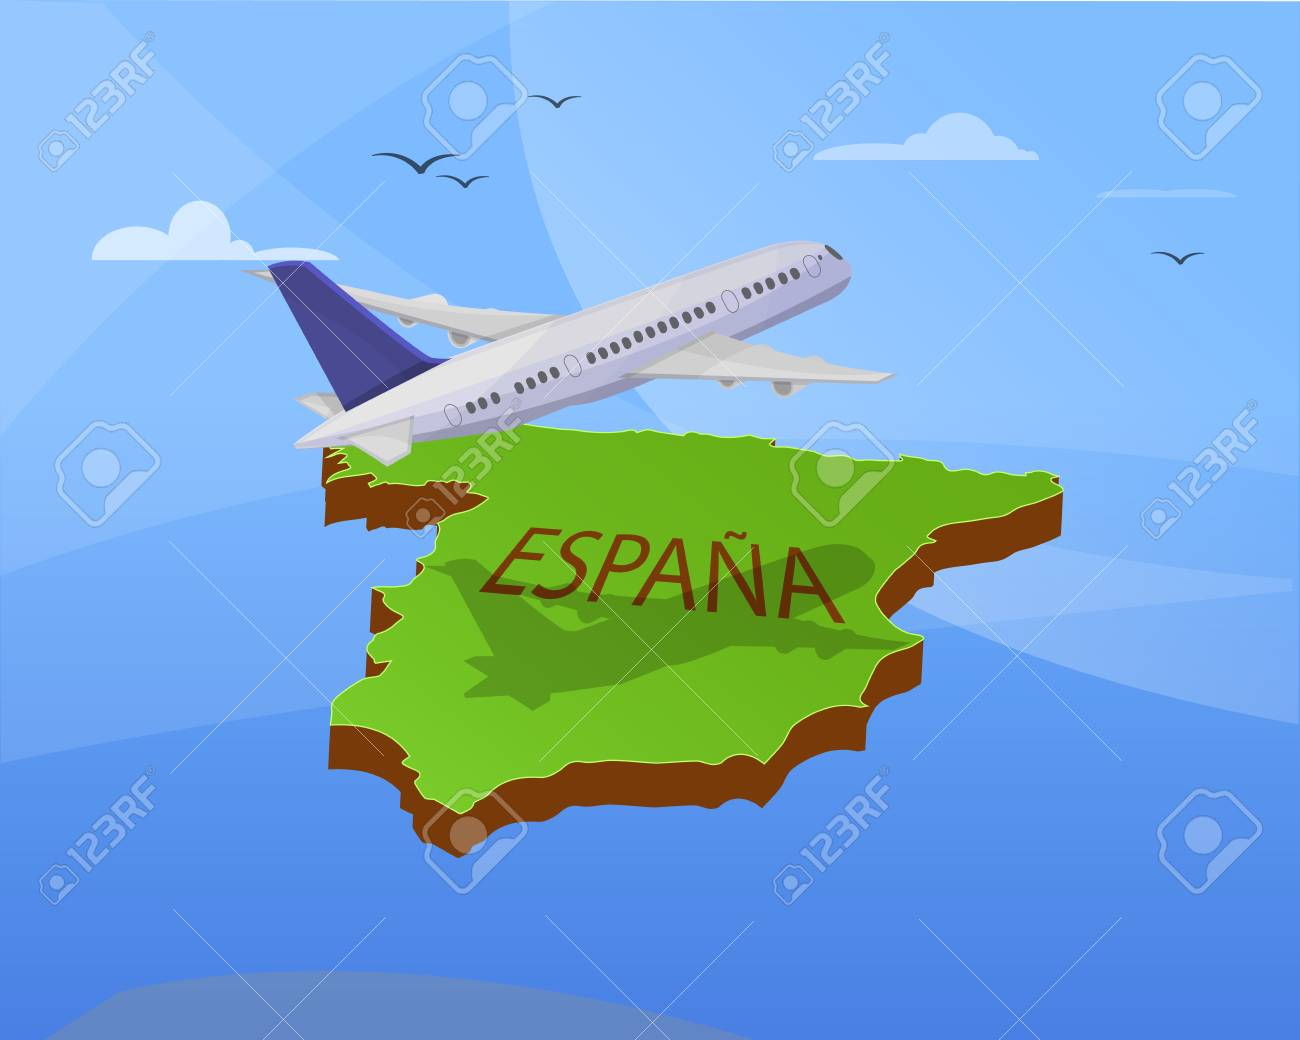 Travel Map Of Spain.Air Travel To Spain Airplane Flying The Map Of Spain 3d Effect